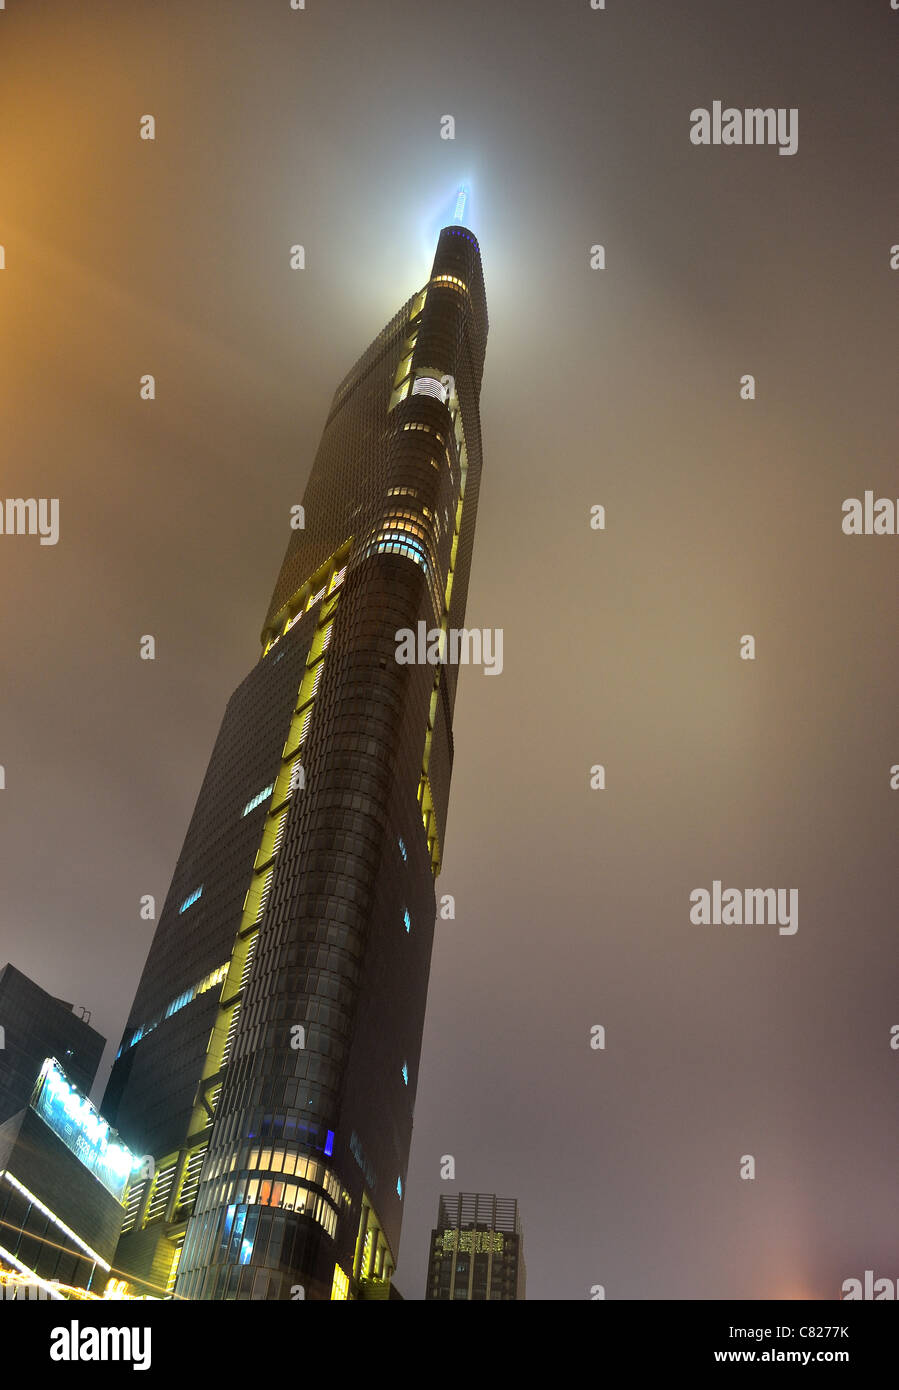 Night view of the Intercontinental tower, the highest building in Nanjing, China - Stock Image